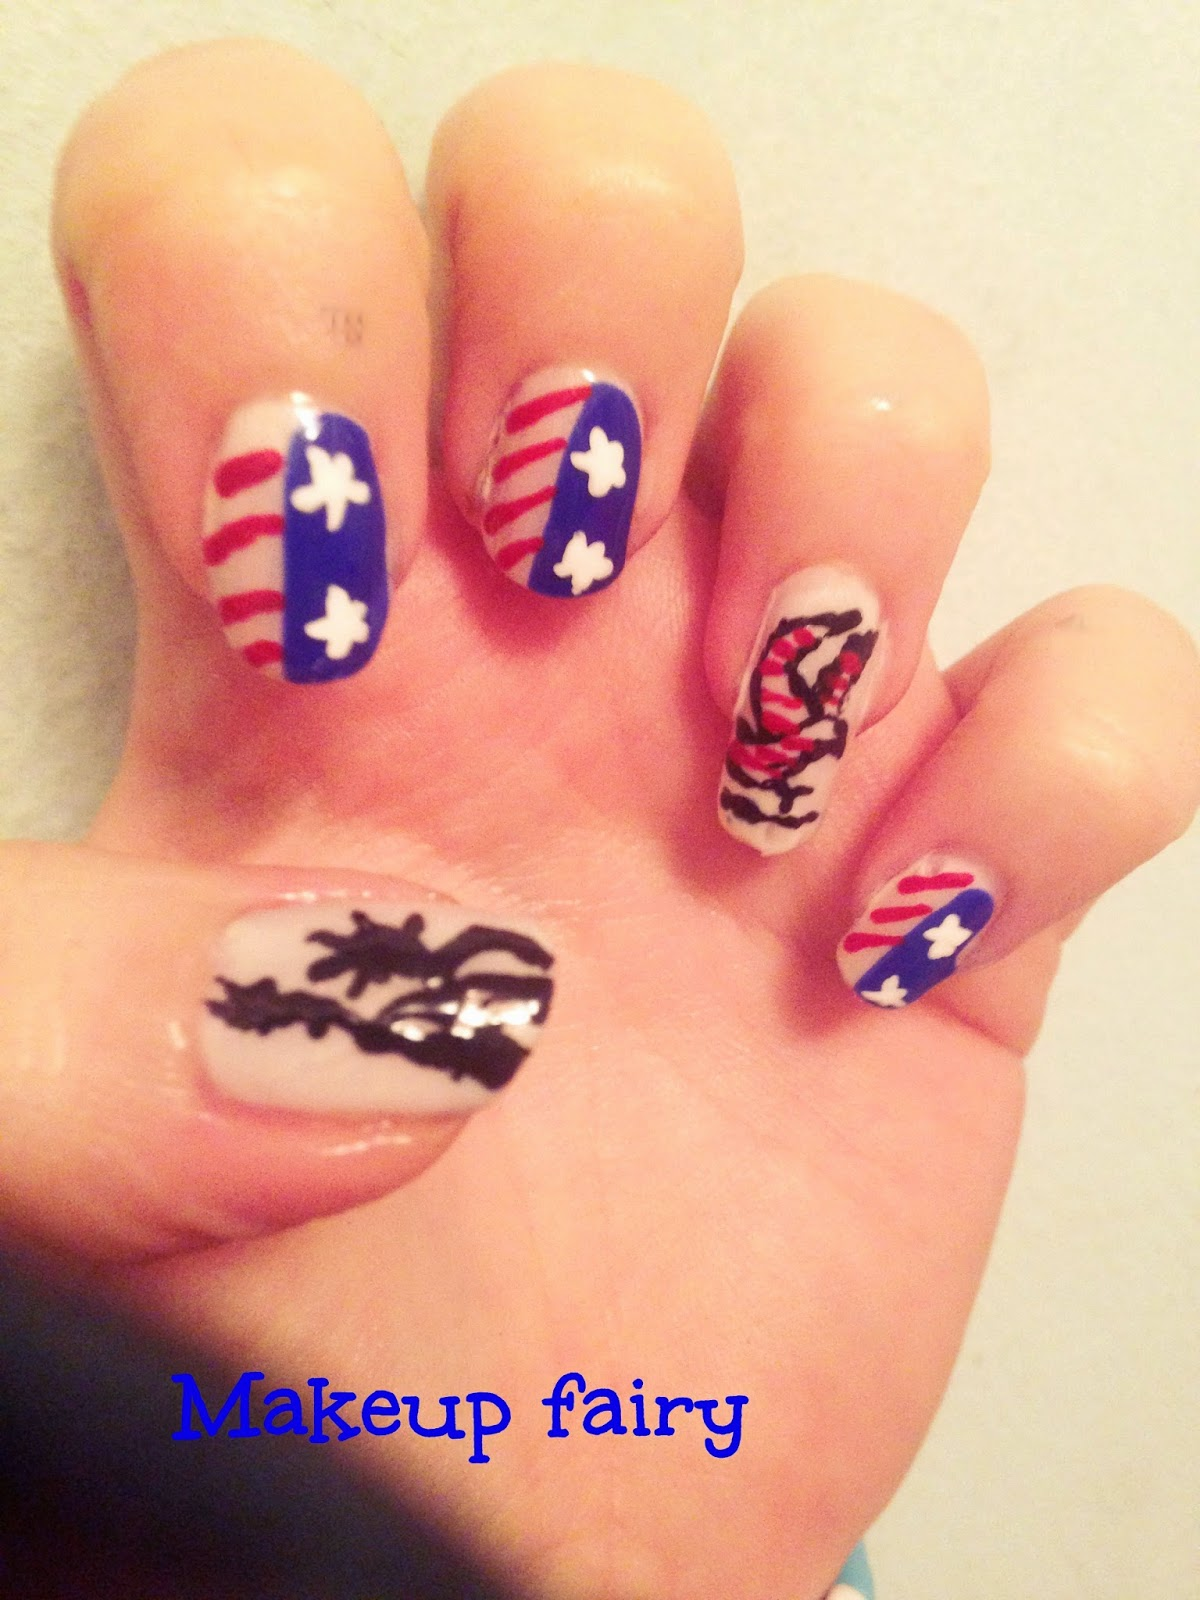 On My Thumb I Painted The Statue Of Liberty In Black While Ring Finger American Eagle Thats It Hope You Like